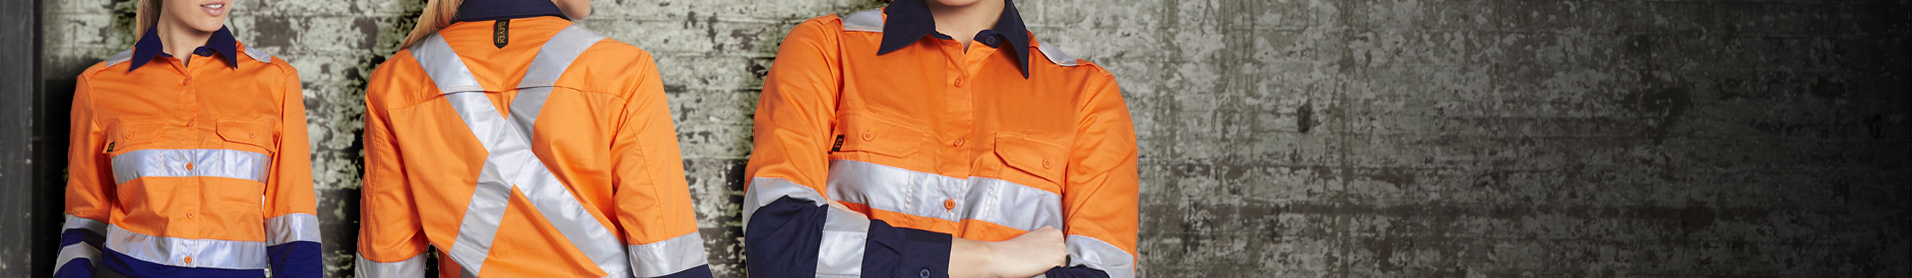 Being seen and staying safe at work is important; our range of High Visibility workwear allows you to wear your favourite styles in High Visibility colours or with 3M retro reflective tapes. All our styles meet Australian and New Zealand standards 4602.1:2011 for either Day or Day/Night visibility. Choose from Evolution Drill shirts with mechanical stretch to cool yet durable AeroCool shirts with perorated 3M Retro reflective tape.